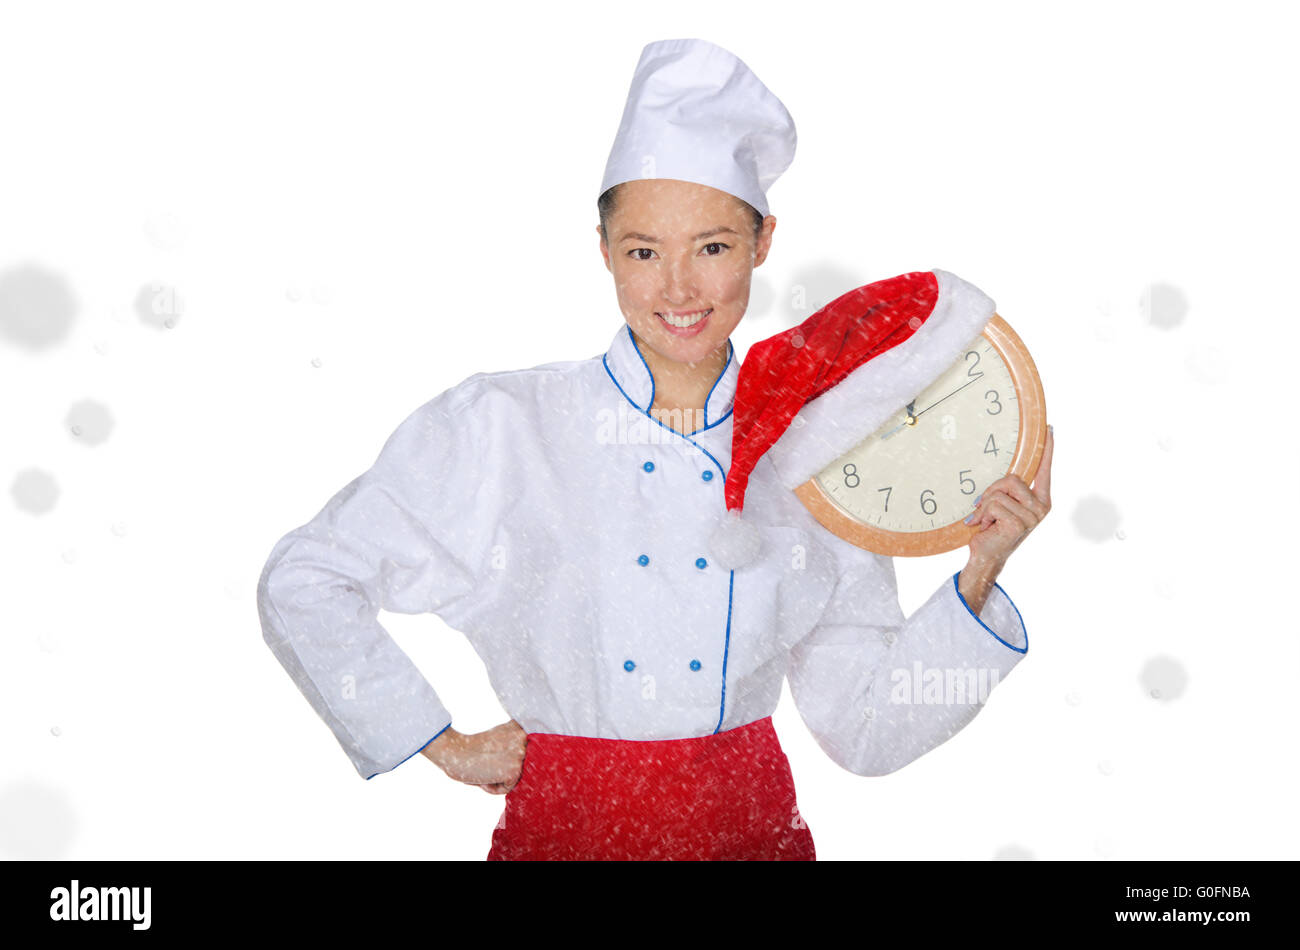 Asian chef with clock and Christmas hat - Stock Image